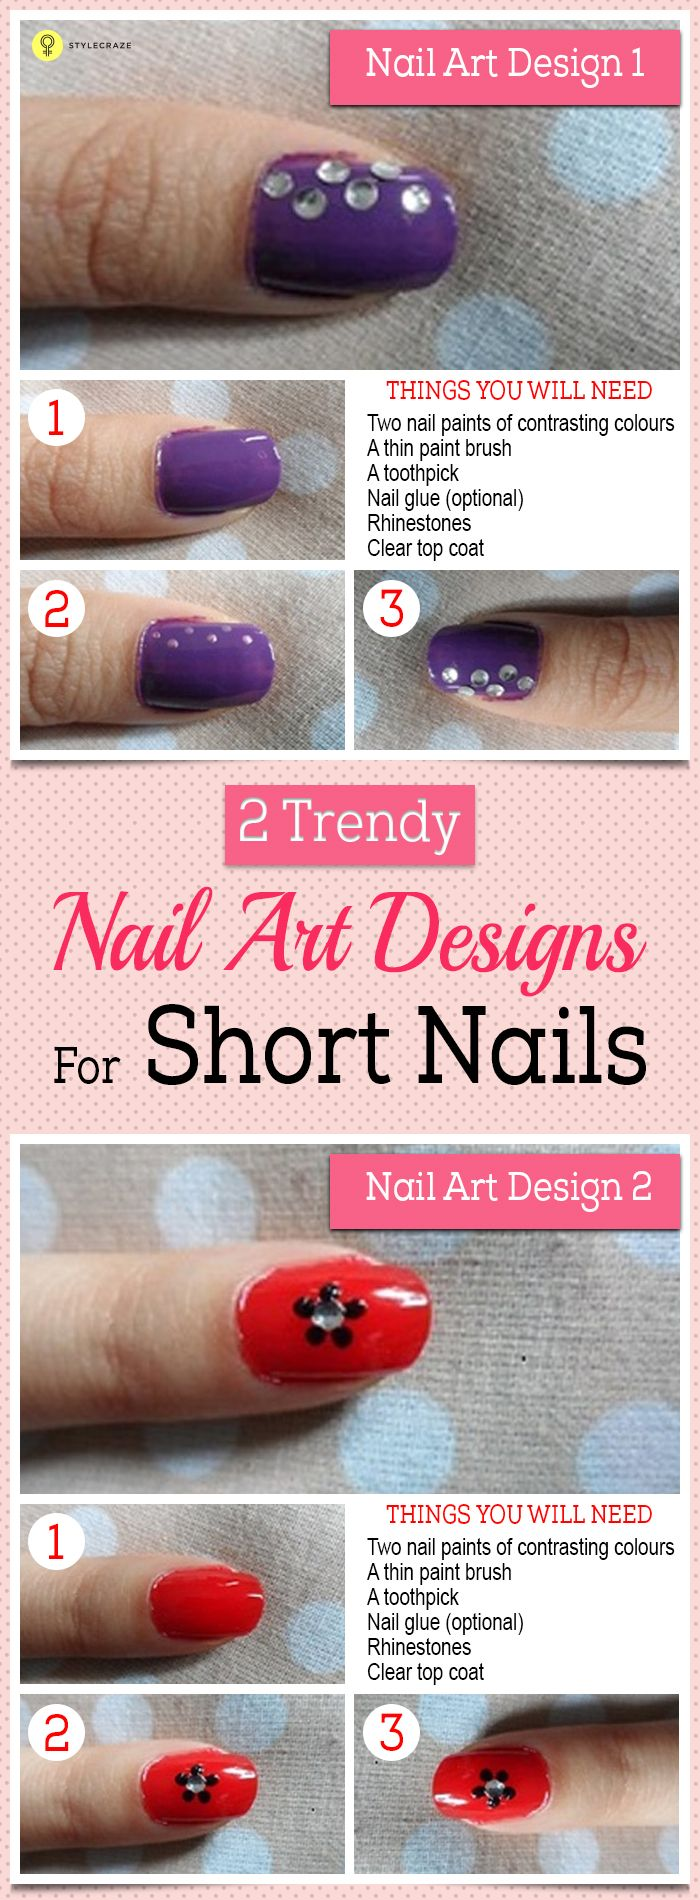 Girls simply cannot do without nail paints. The latest trend that has caught up. Almost every girl every where has fallen in love with nail art. From college to office to home to changing up your style every day, girls are showing off their creative side with some trendy and really interesting nail art these days.